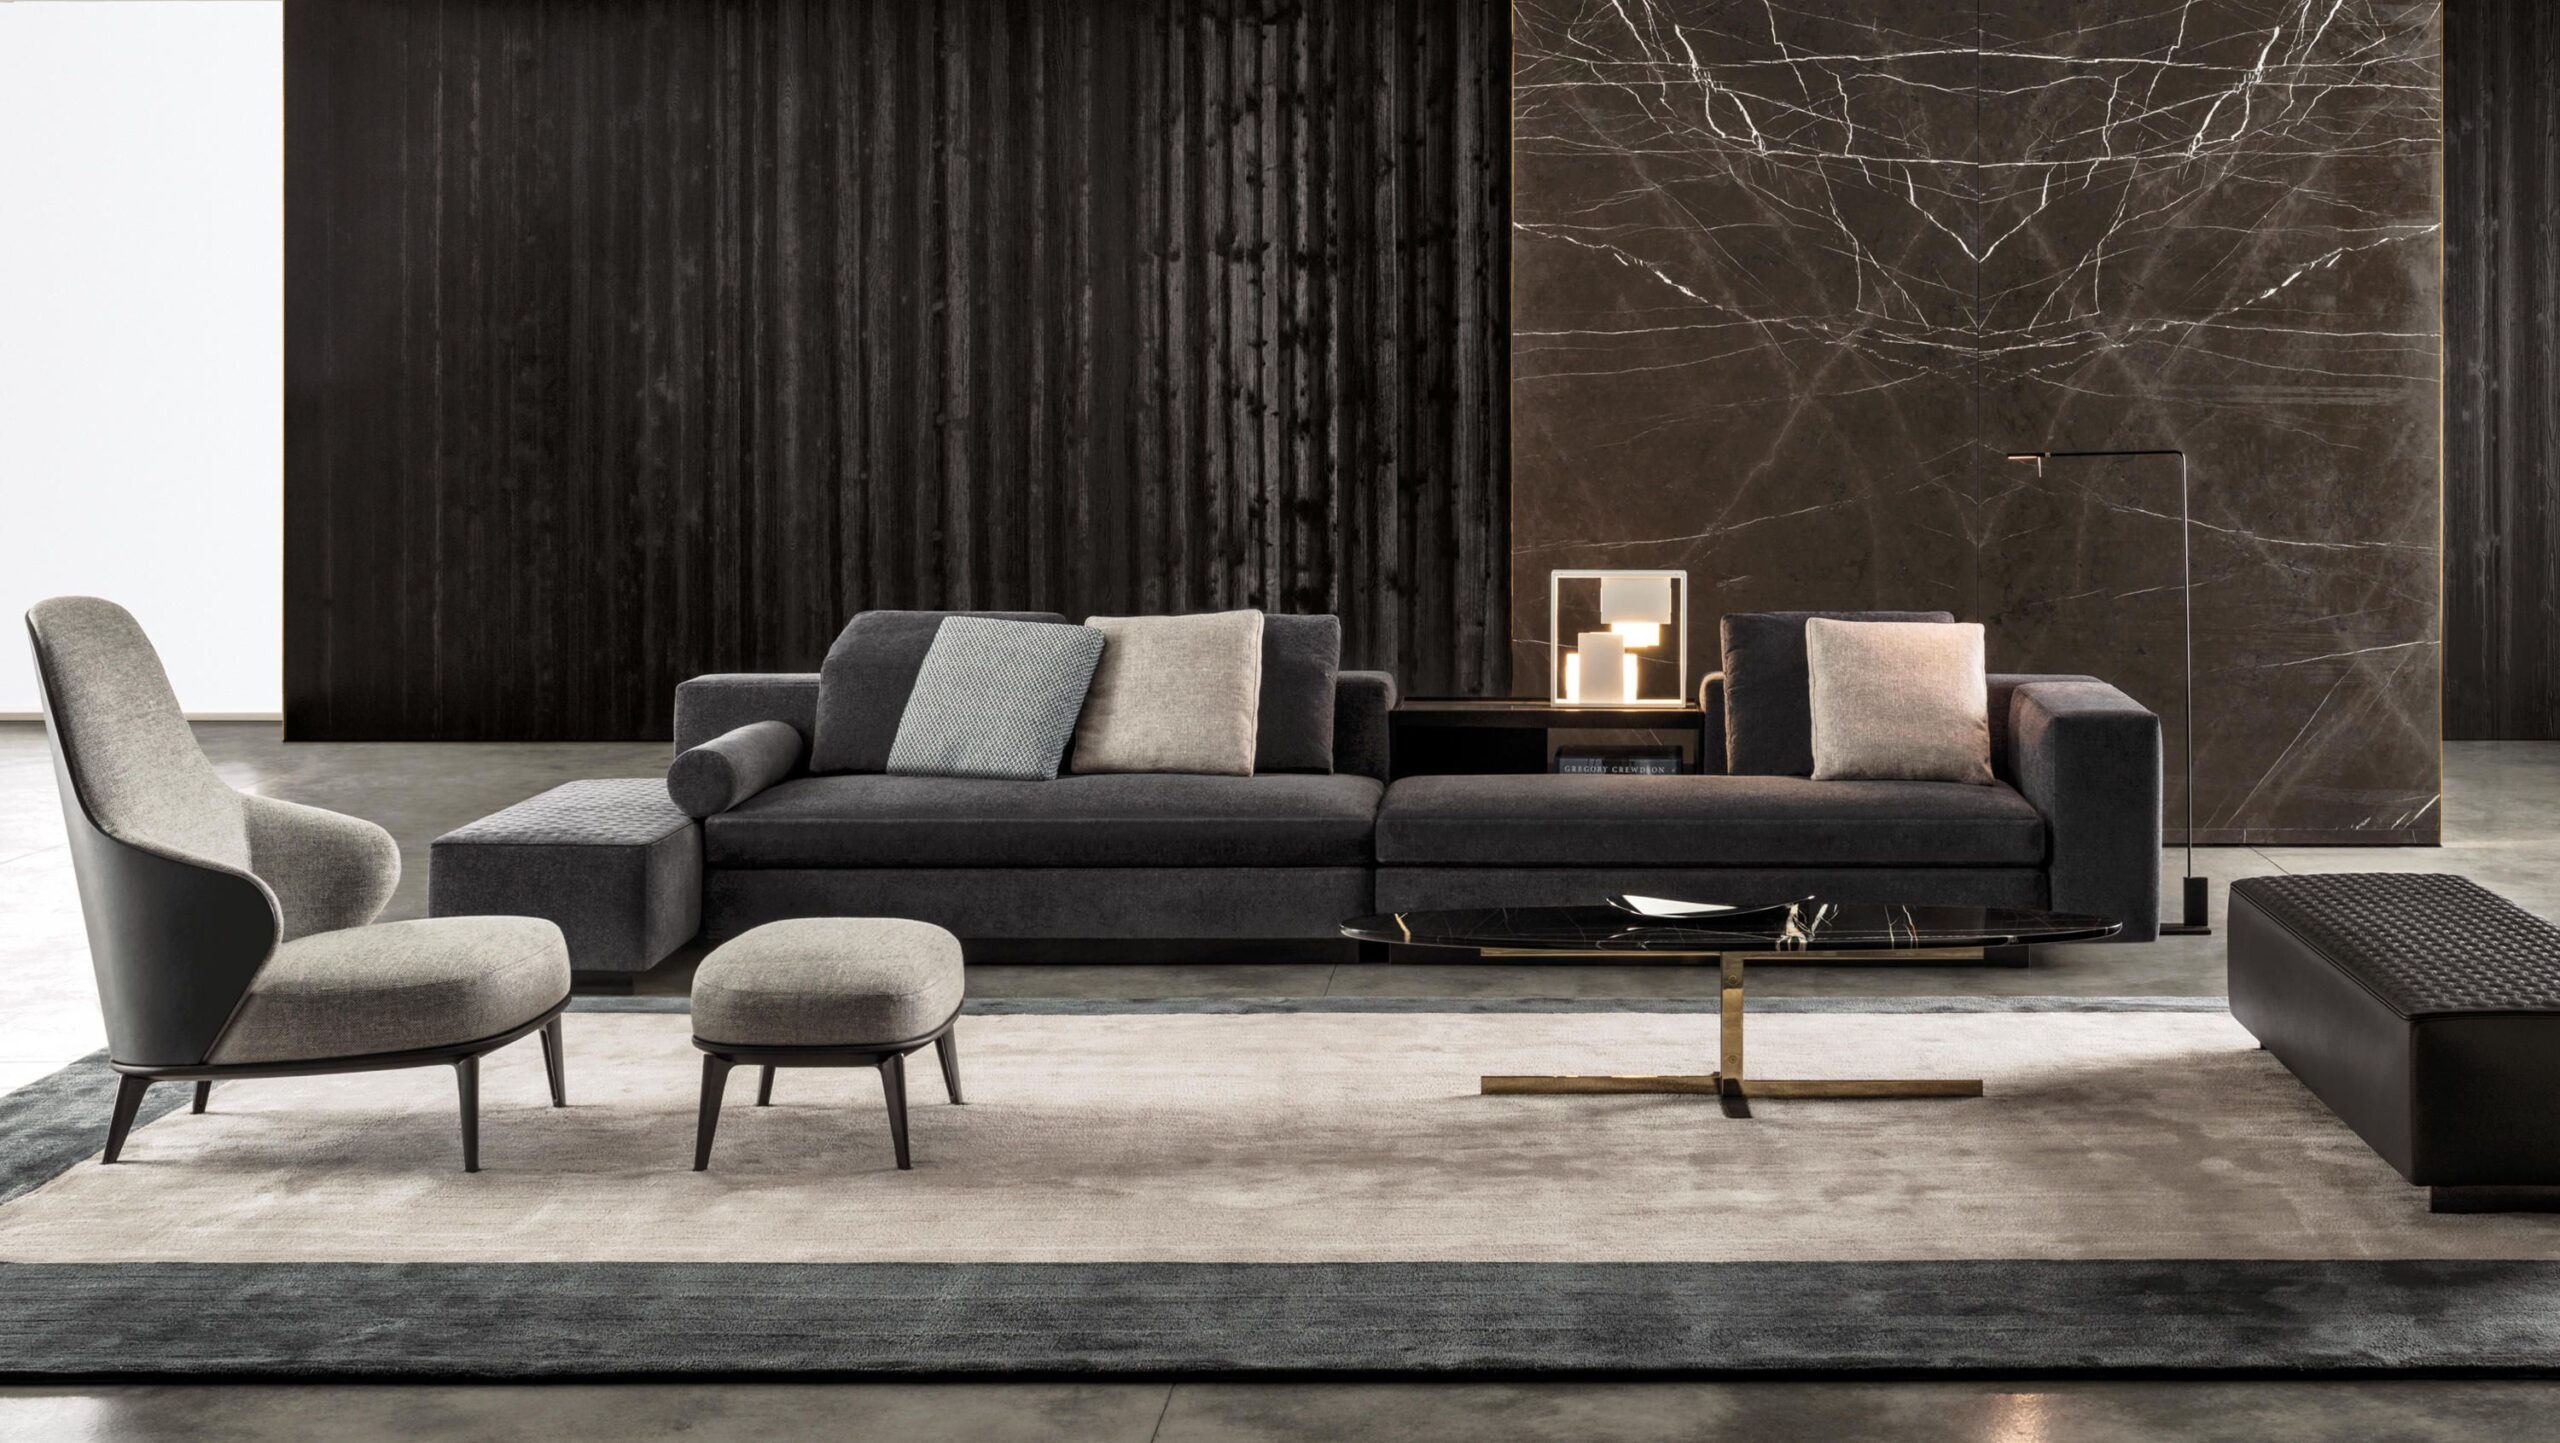 Full Size of Minotti Sofa India Freeman For Sale Alexander Size Hamilton Uk Seating System Cad Block List Indiana Duvet Range Preise Yang Sofas From Frisch Husse Big Mit Sofa Minotti Sofa